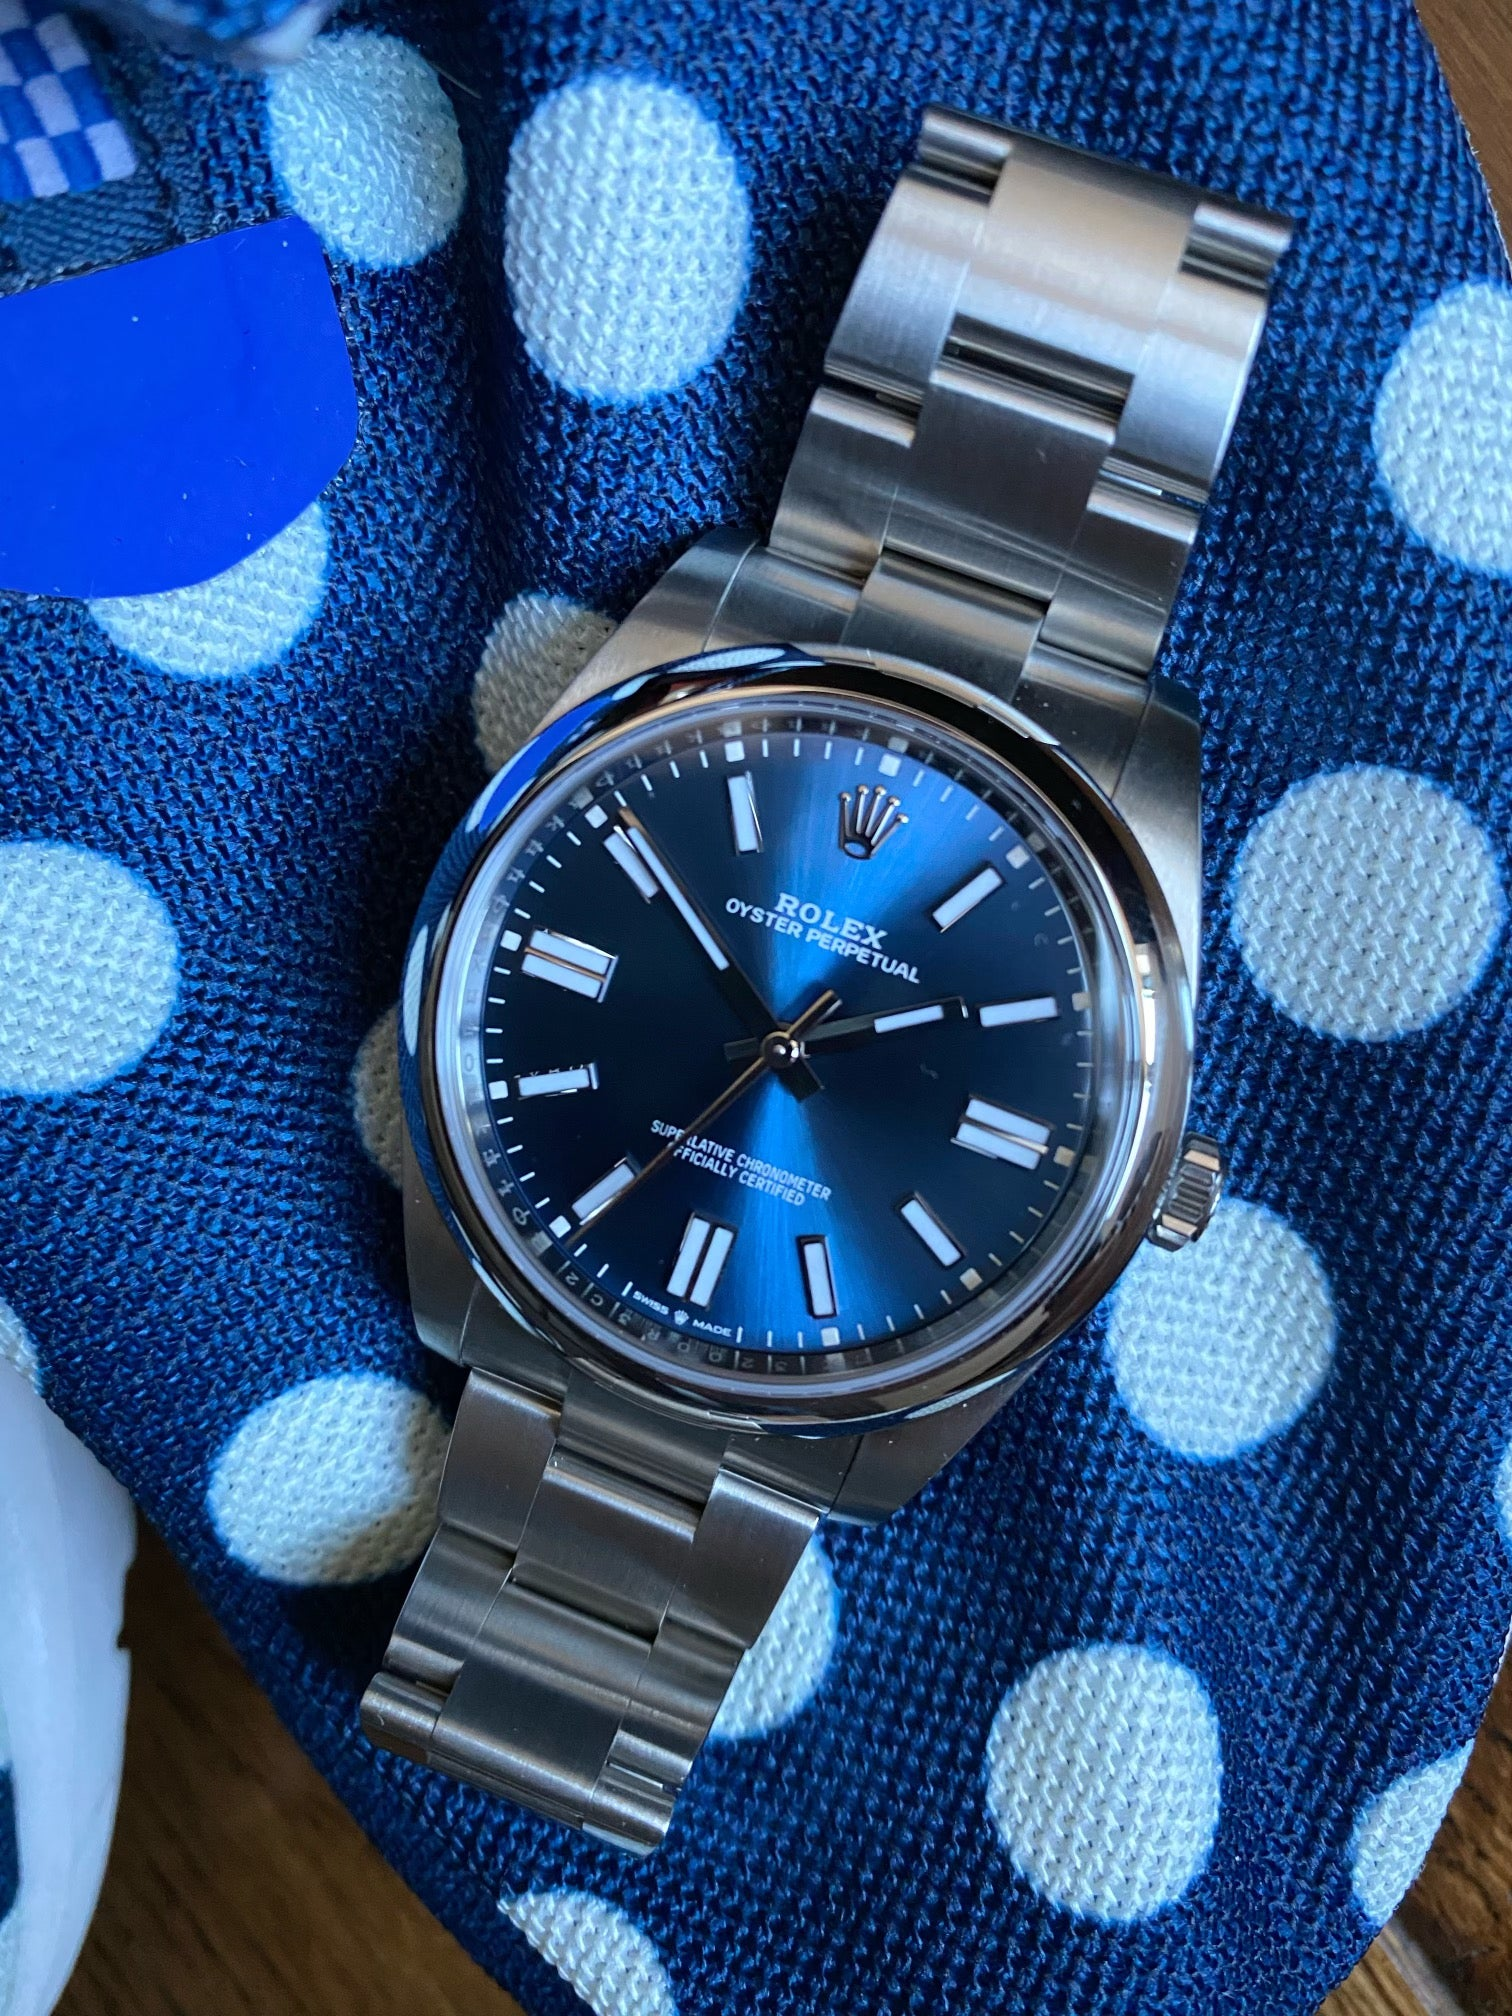 blue rolex oyster perpetual 41 on blue polka dot sneakers